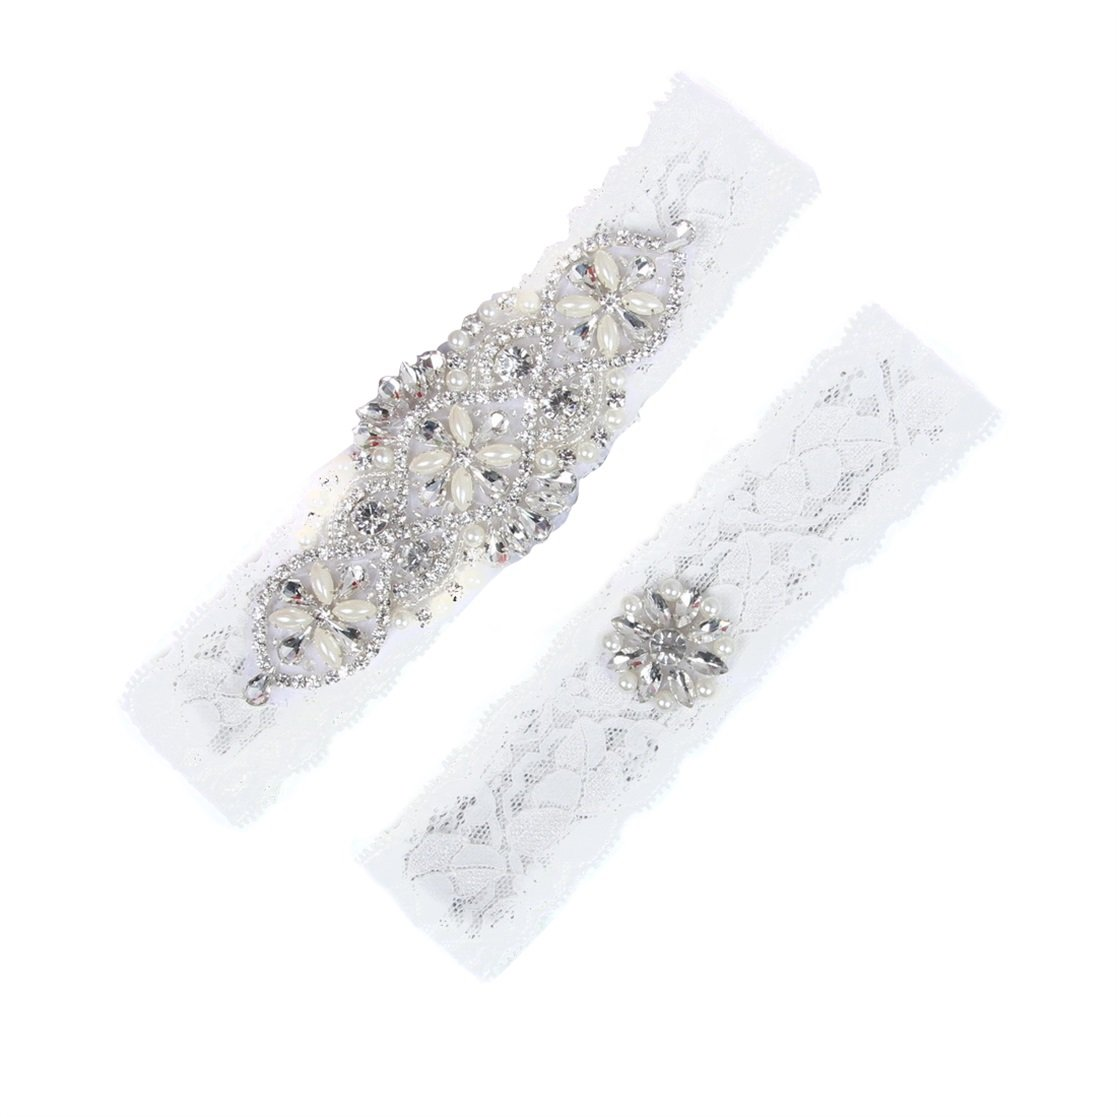 YDTQXG Ladies Bridal Lace Garters Stretch Elastic Garters Set Rhinestones Decor-Ivory QXG0013